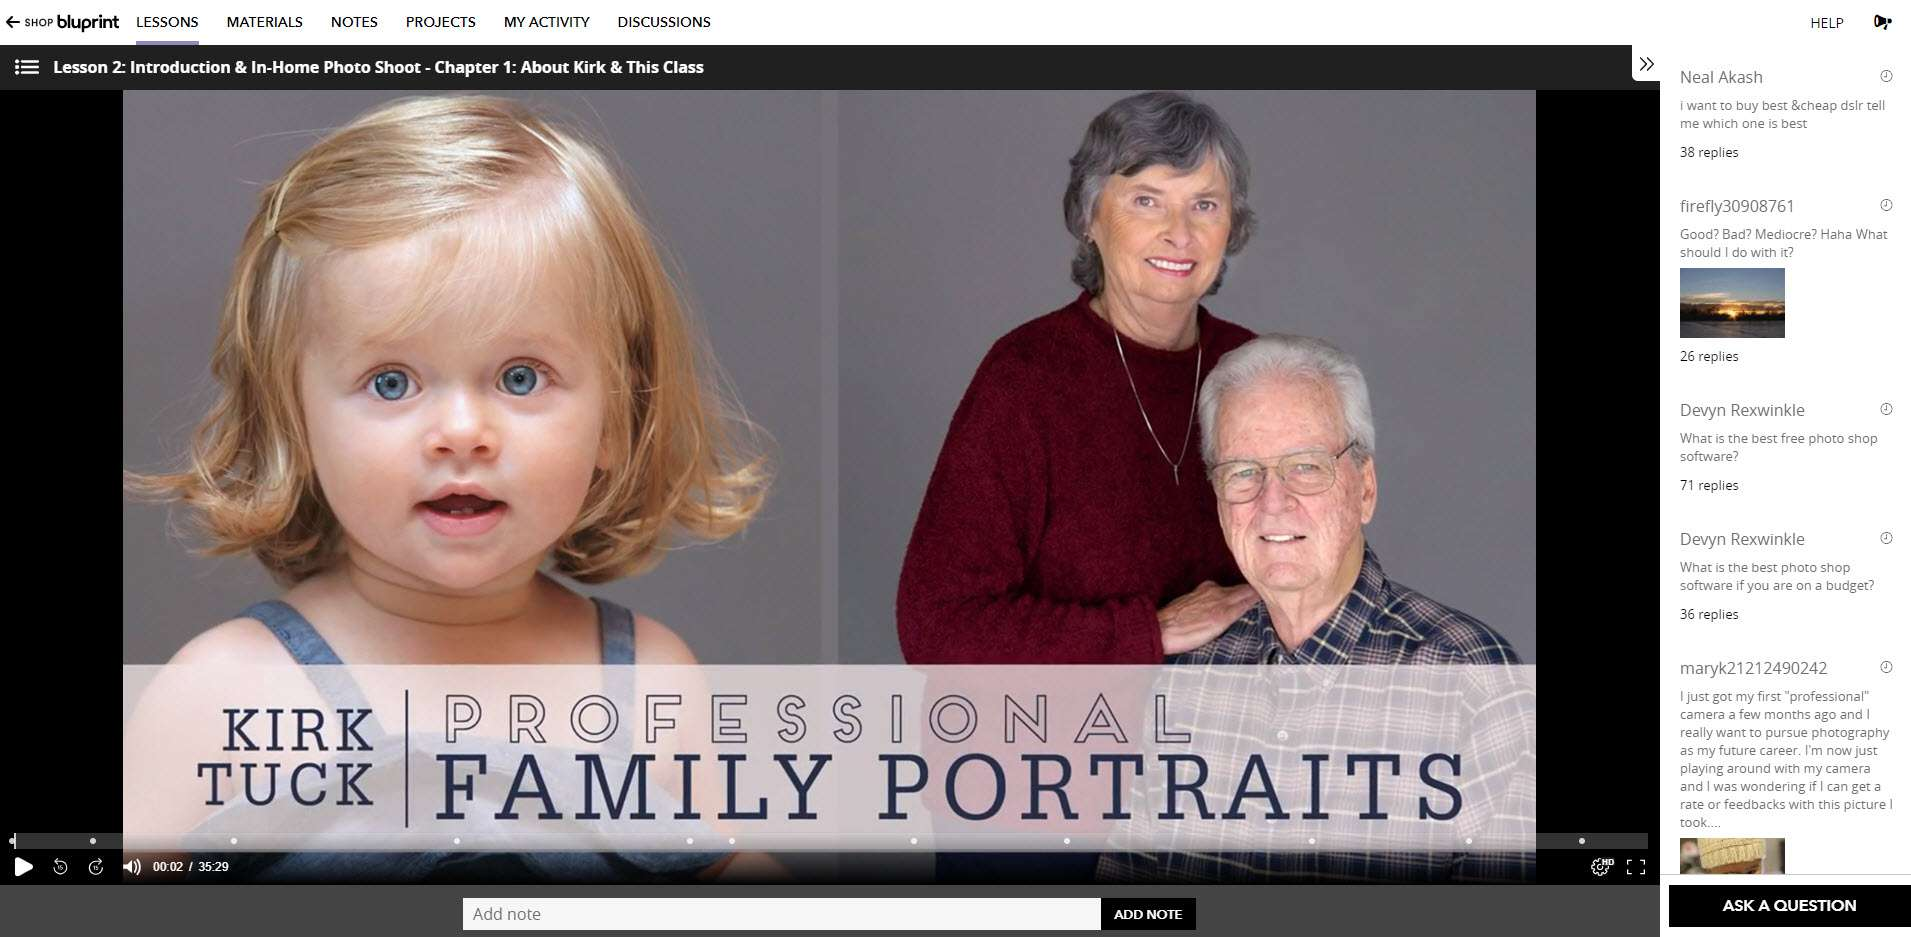 The Professional Family Portraits photography class web page.